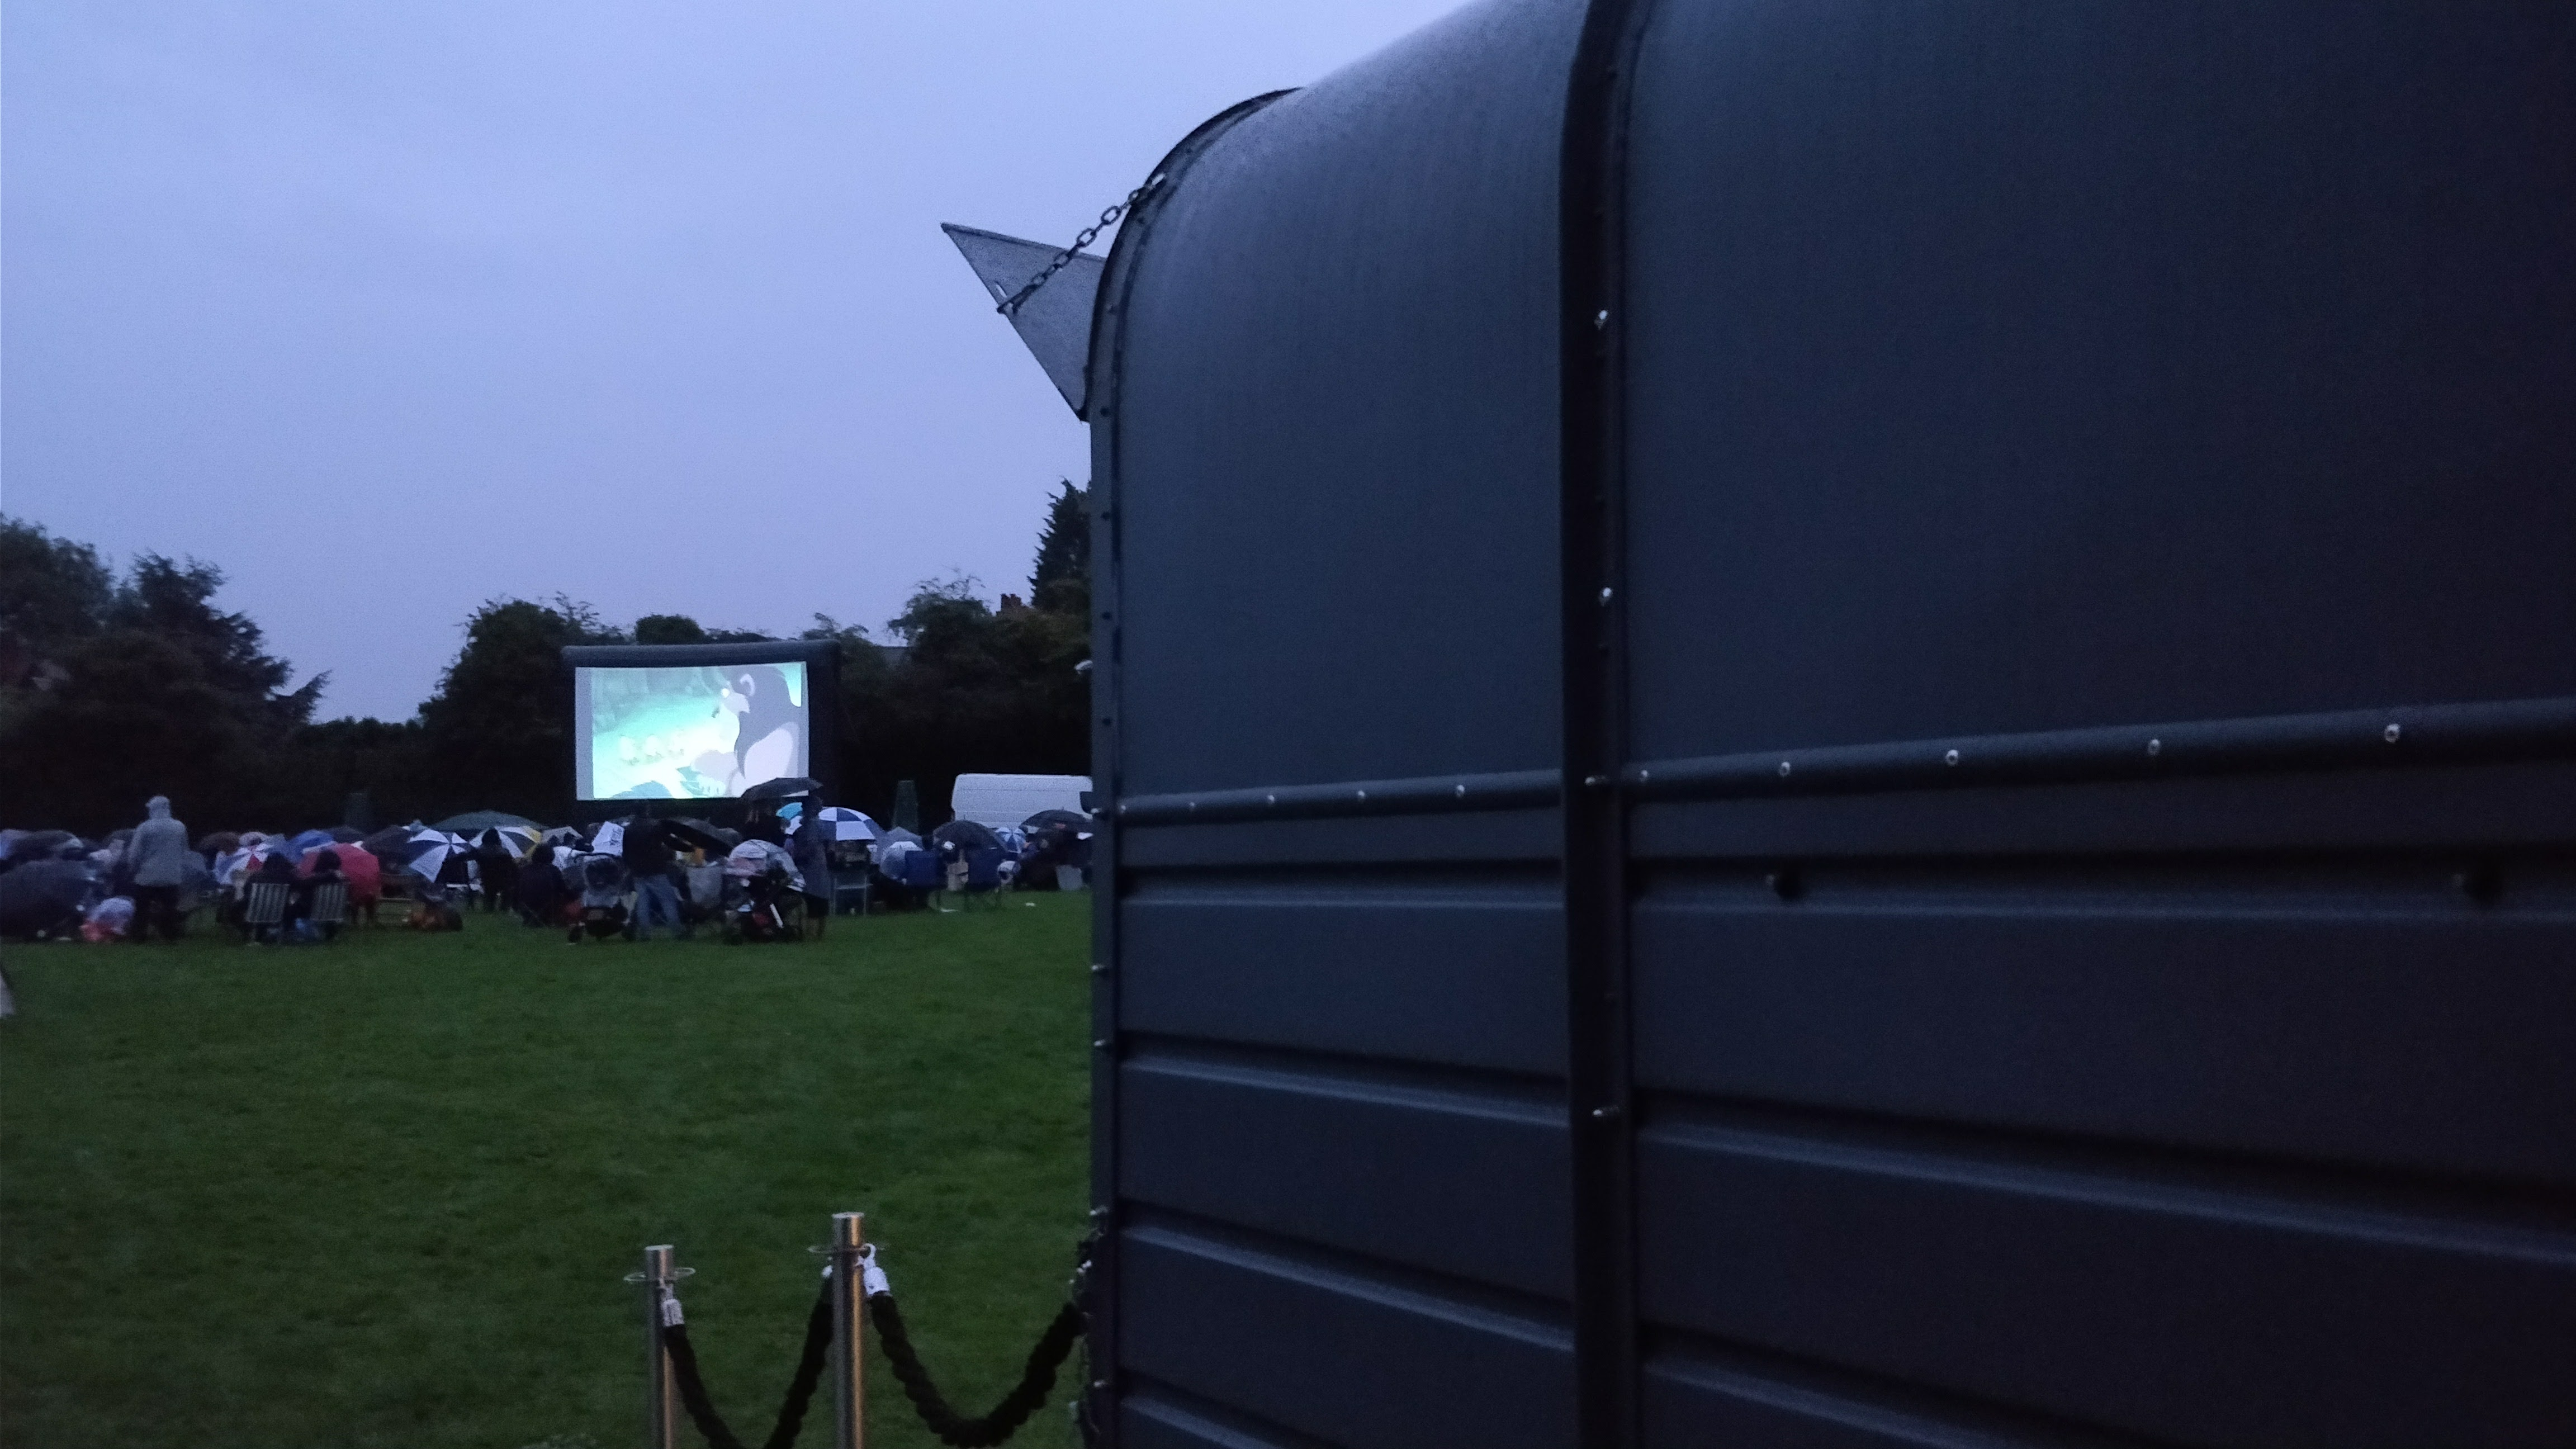 Outdoor cinema ... in the rain!!